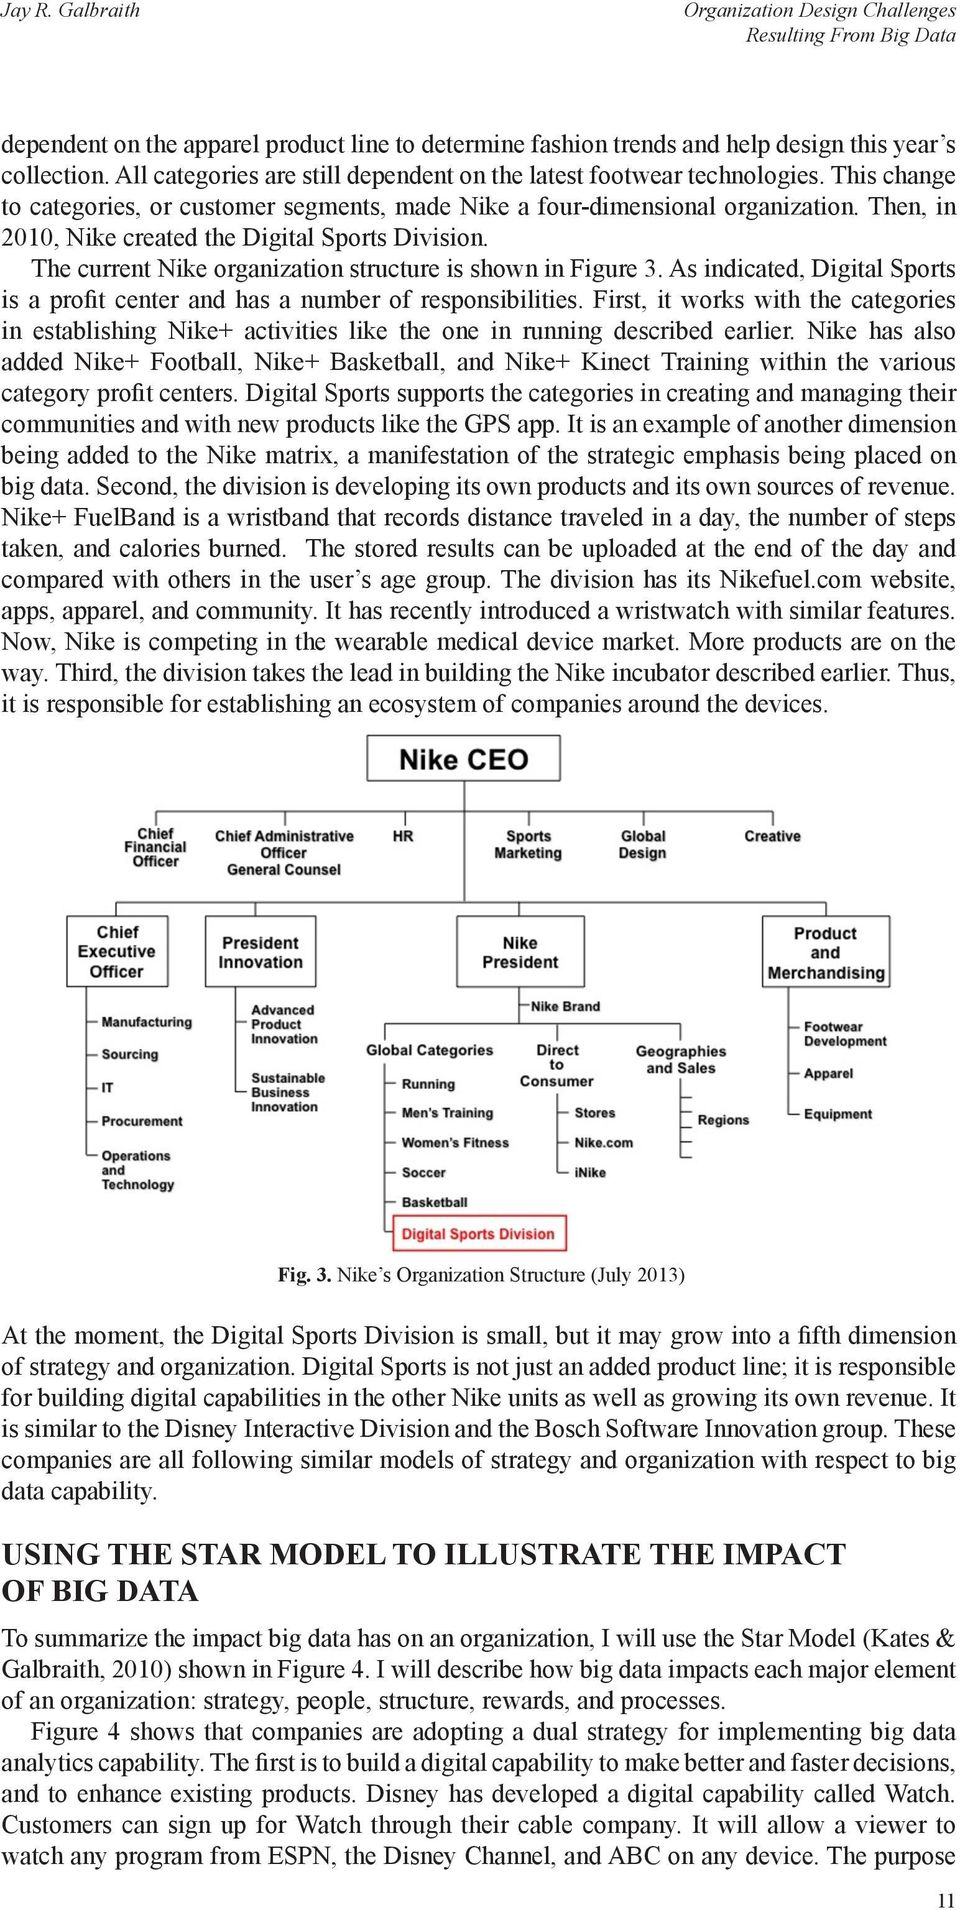 Then, in 2010, Nike created the Digital Sports Division. The current Nike organization structure is shown in Figure 3.